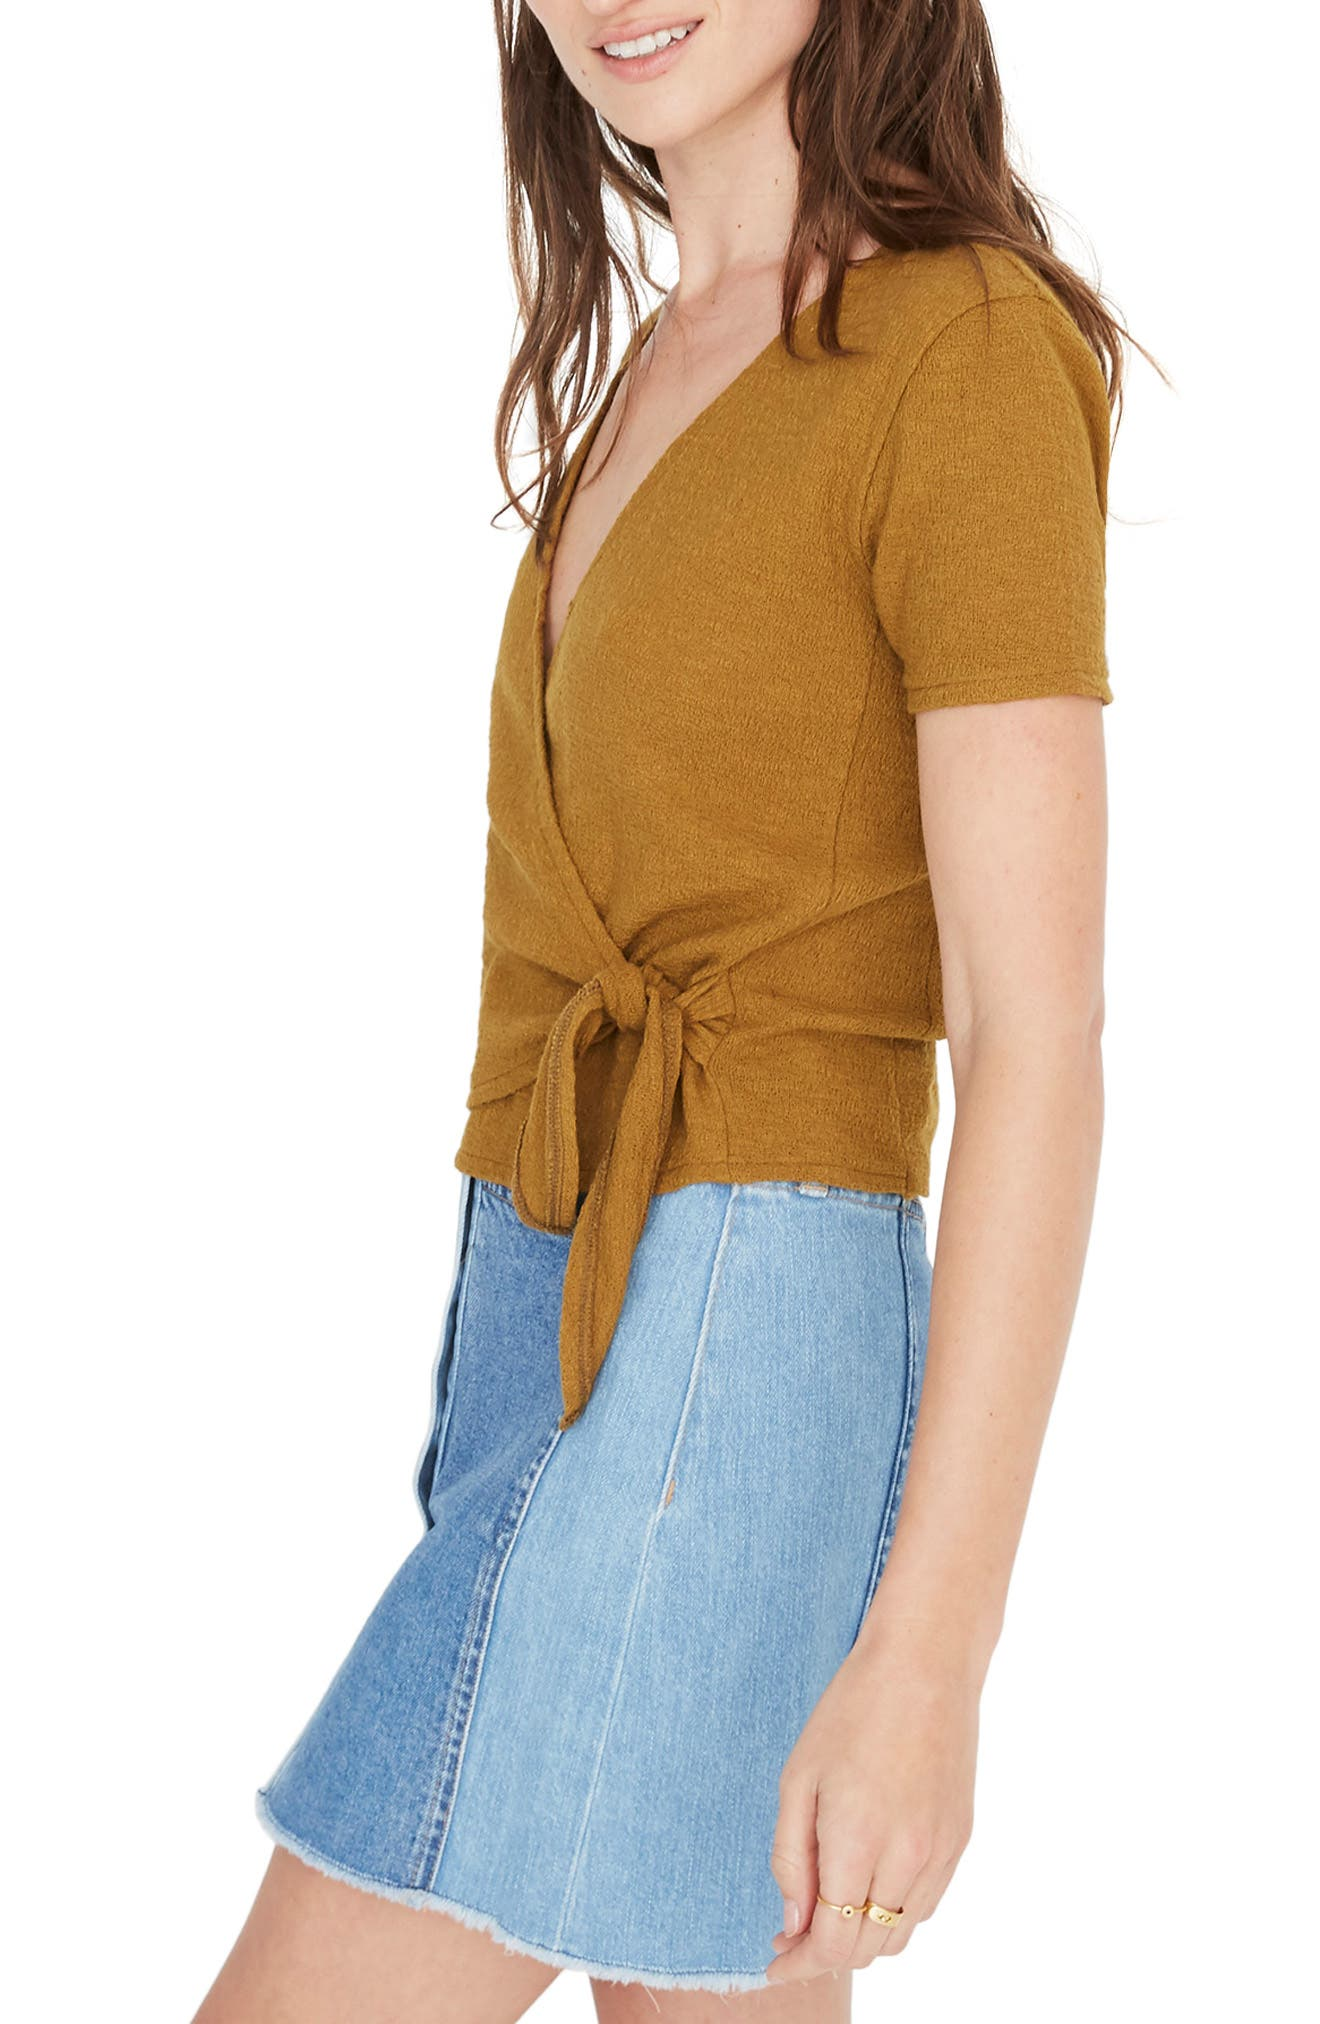 Texture & Thread Wrap Top,                             Alternate thumbnail 3, color,                             300